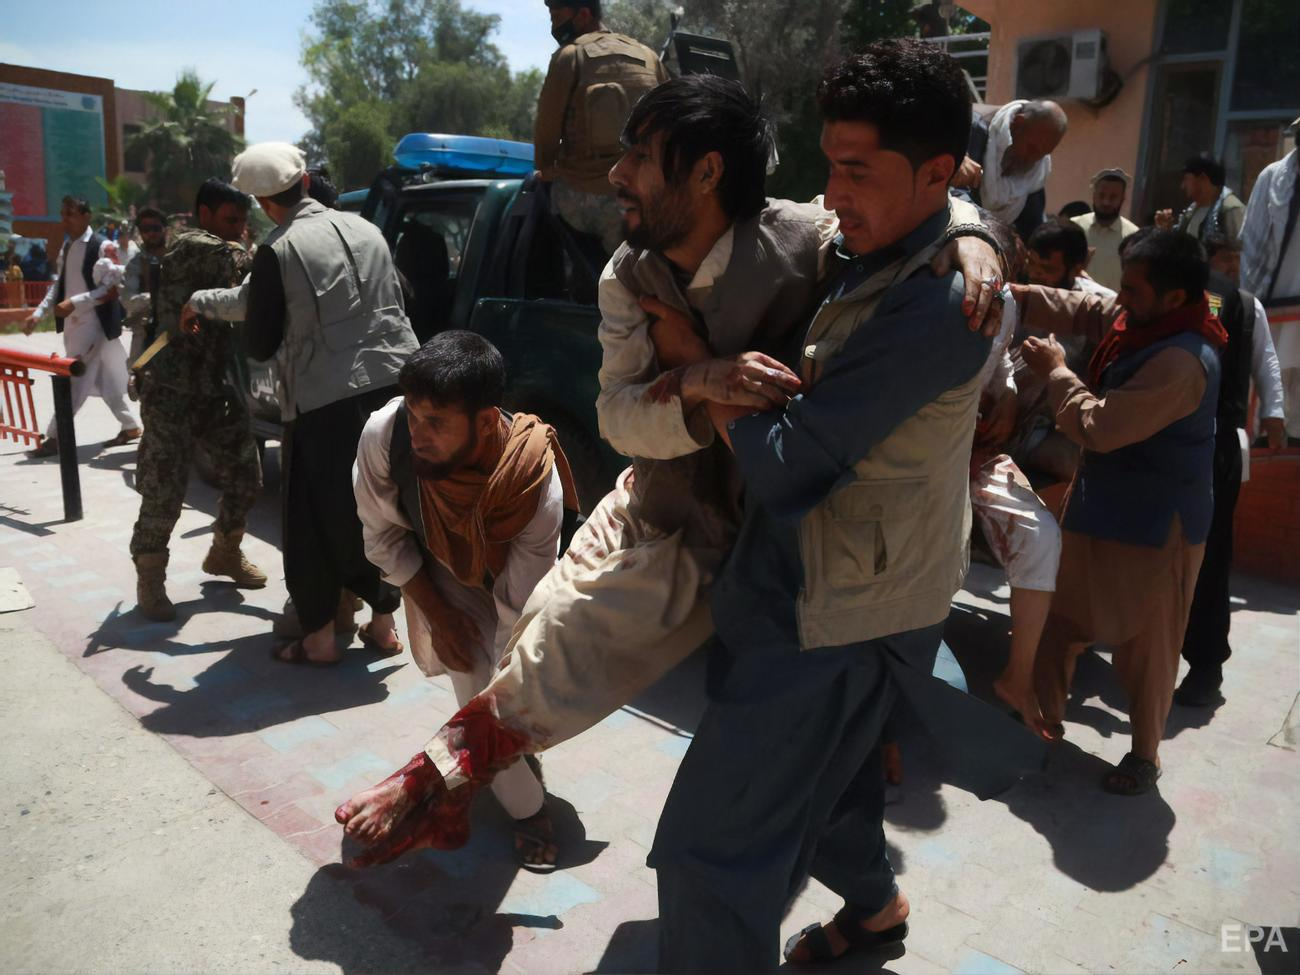 Mortar fire in one of the Afghan provinces killed 10 people